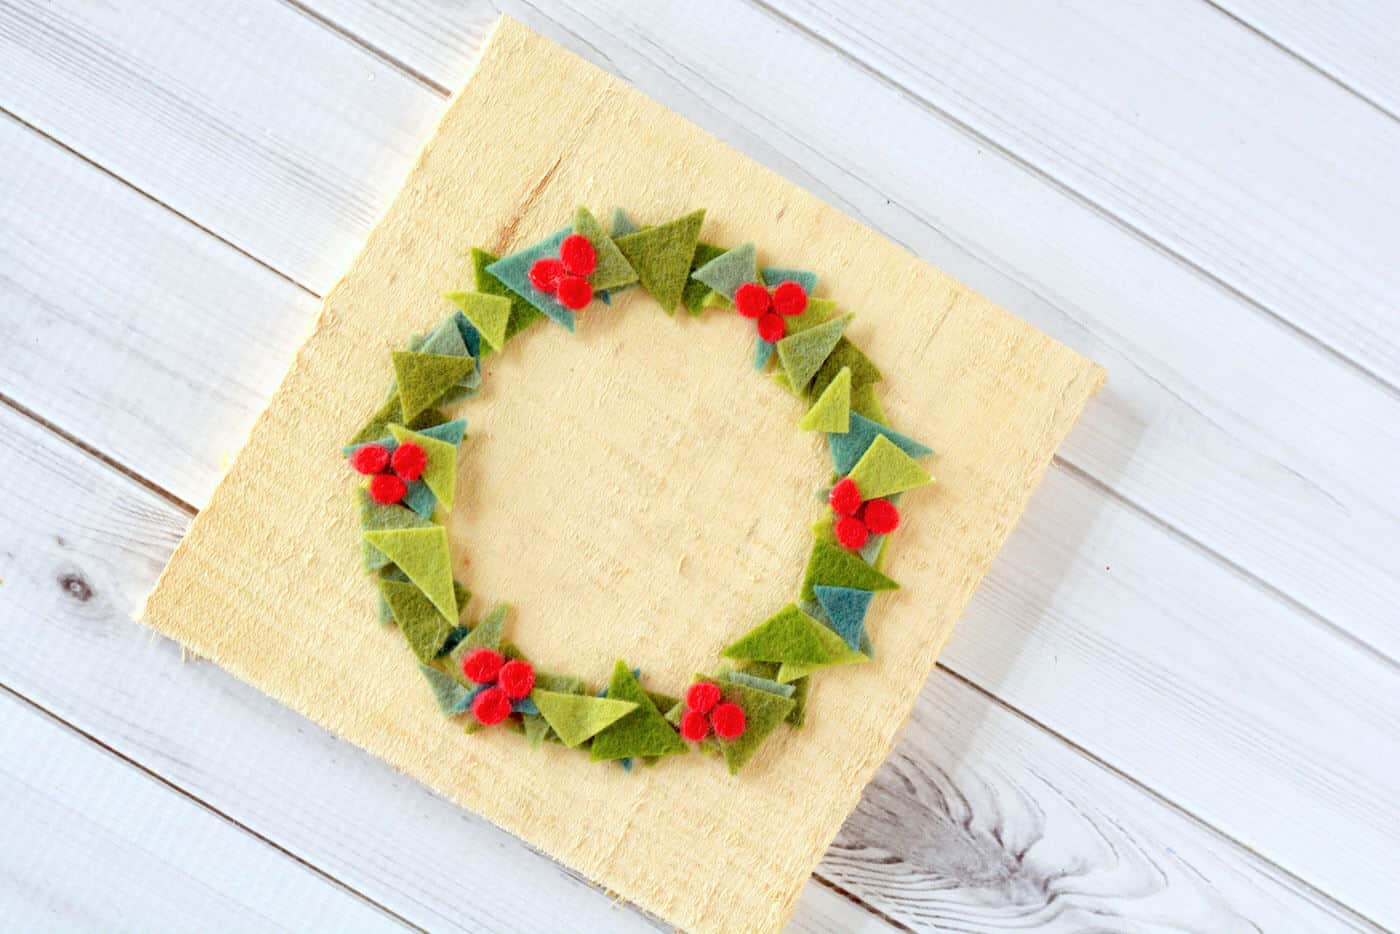 If you love felt Christmas decorations, try this easy and modern holiday wreath project! Perfect for using up those small scraps.